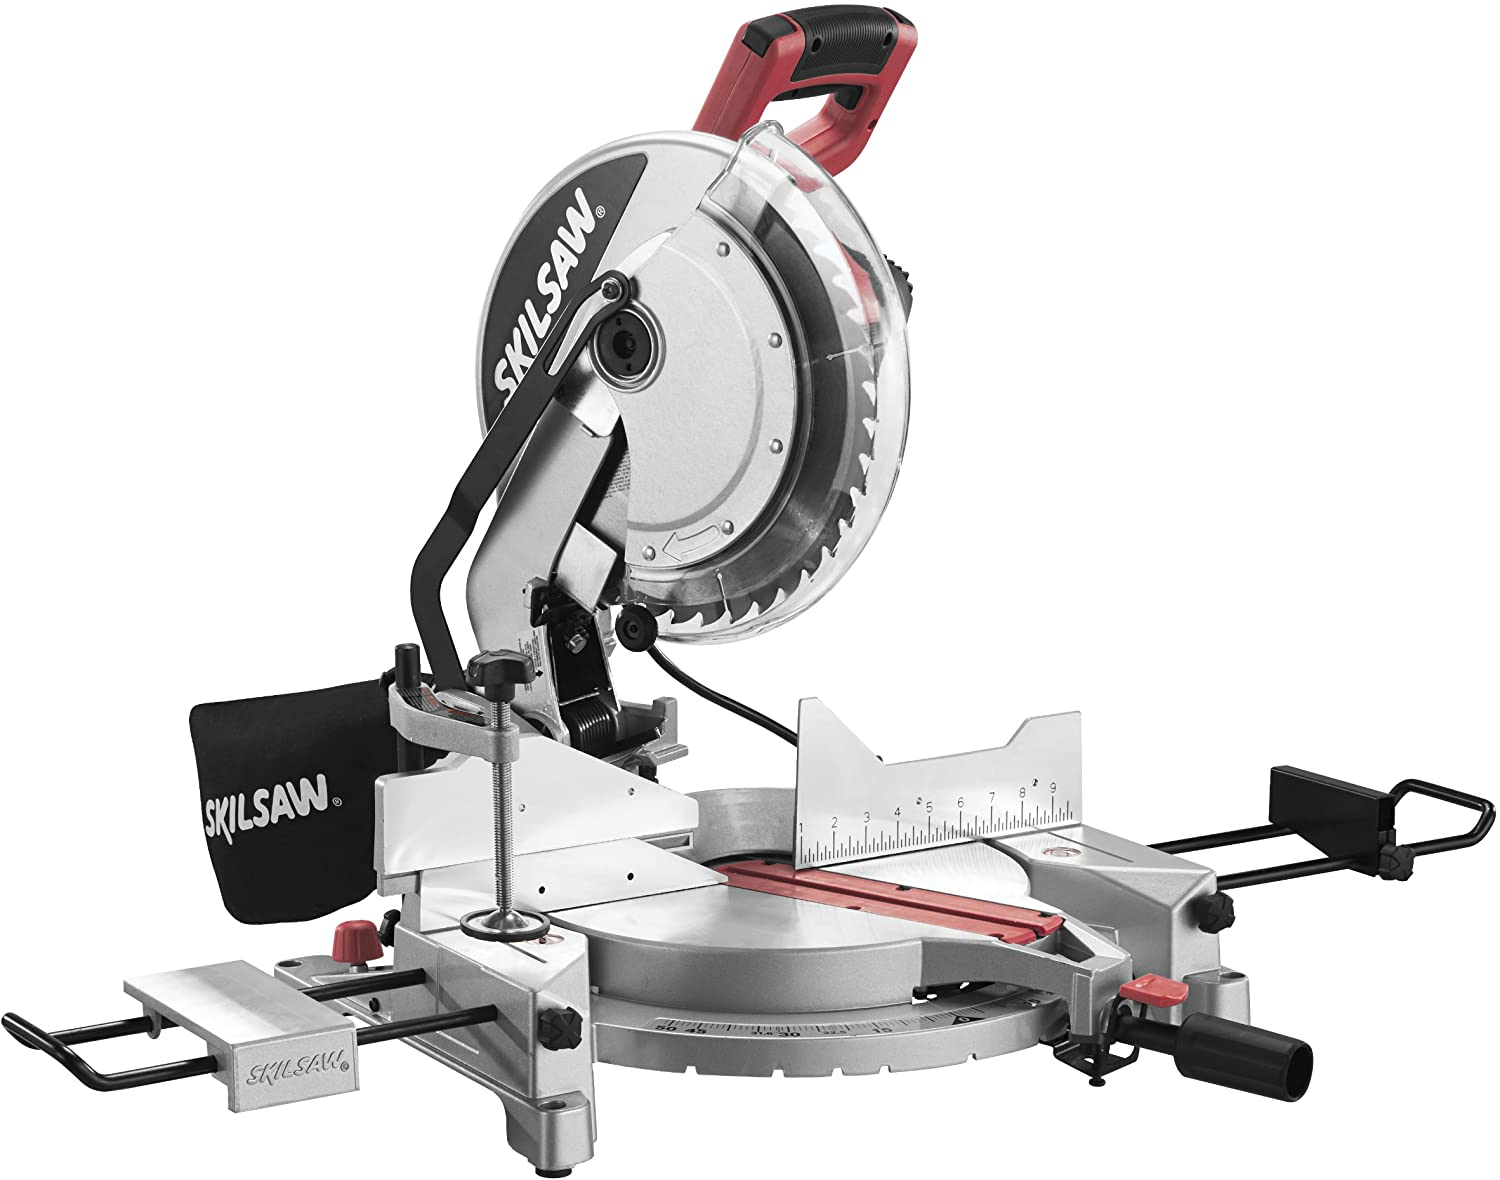 SKIL 3821-01 12-Inch Quick Mount Compound Miter Saw